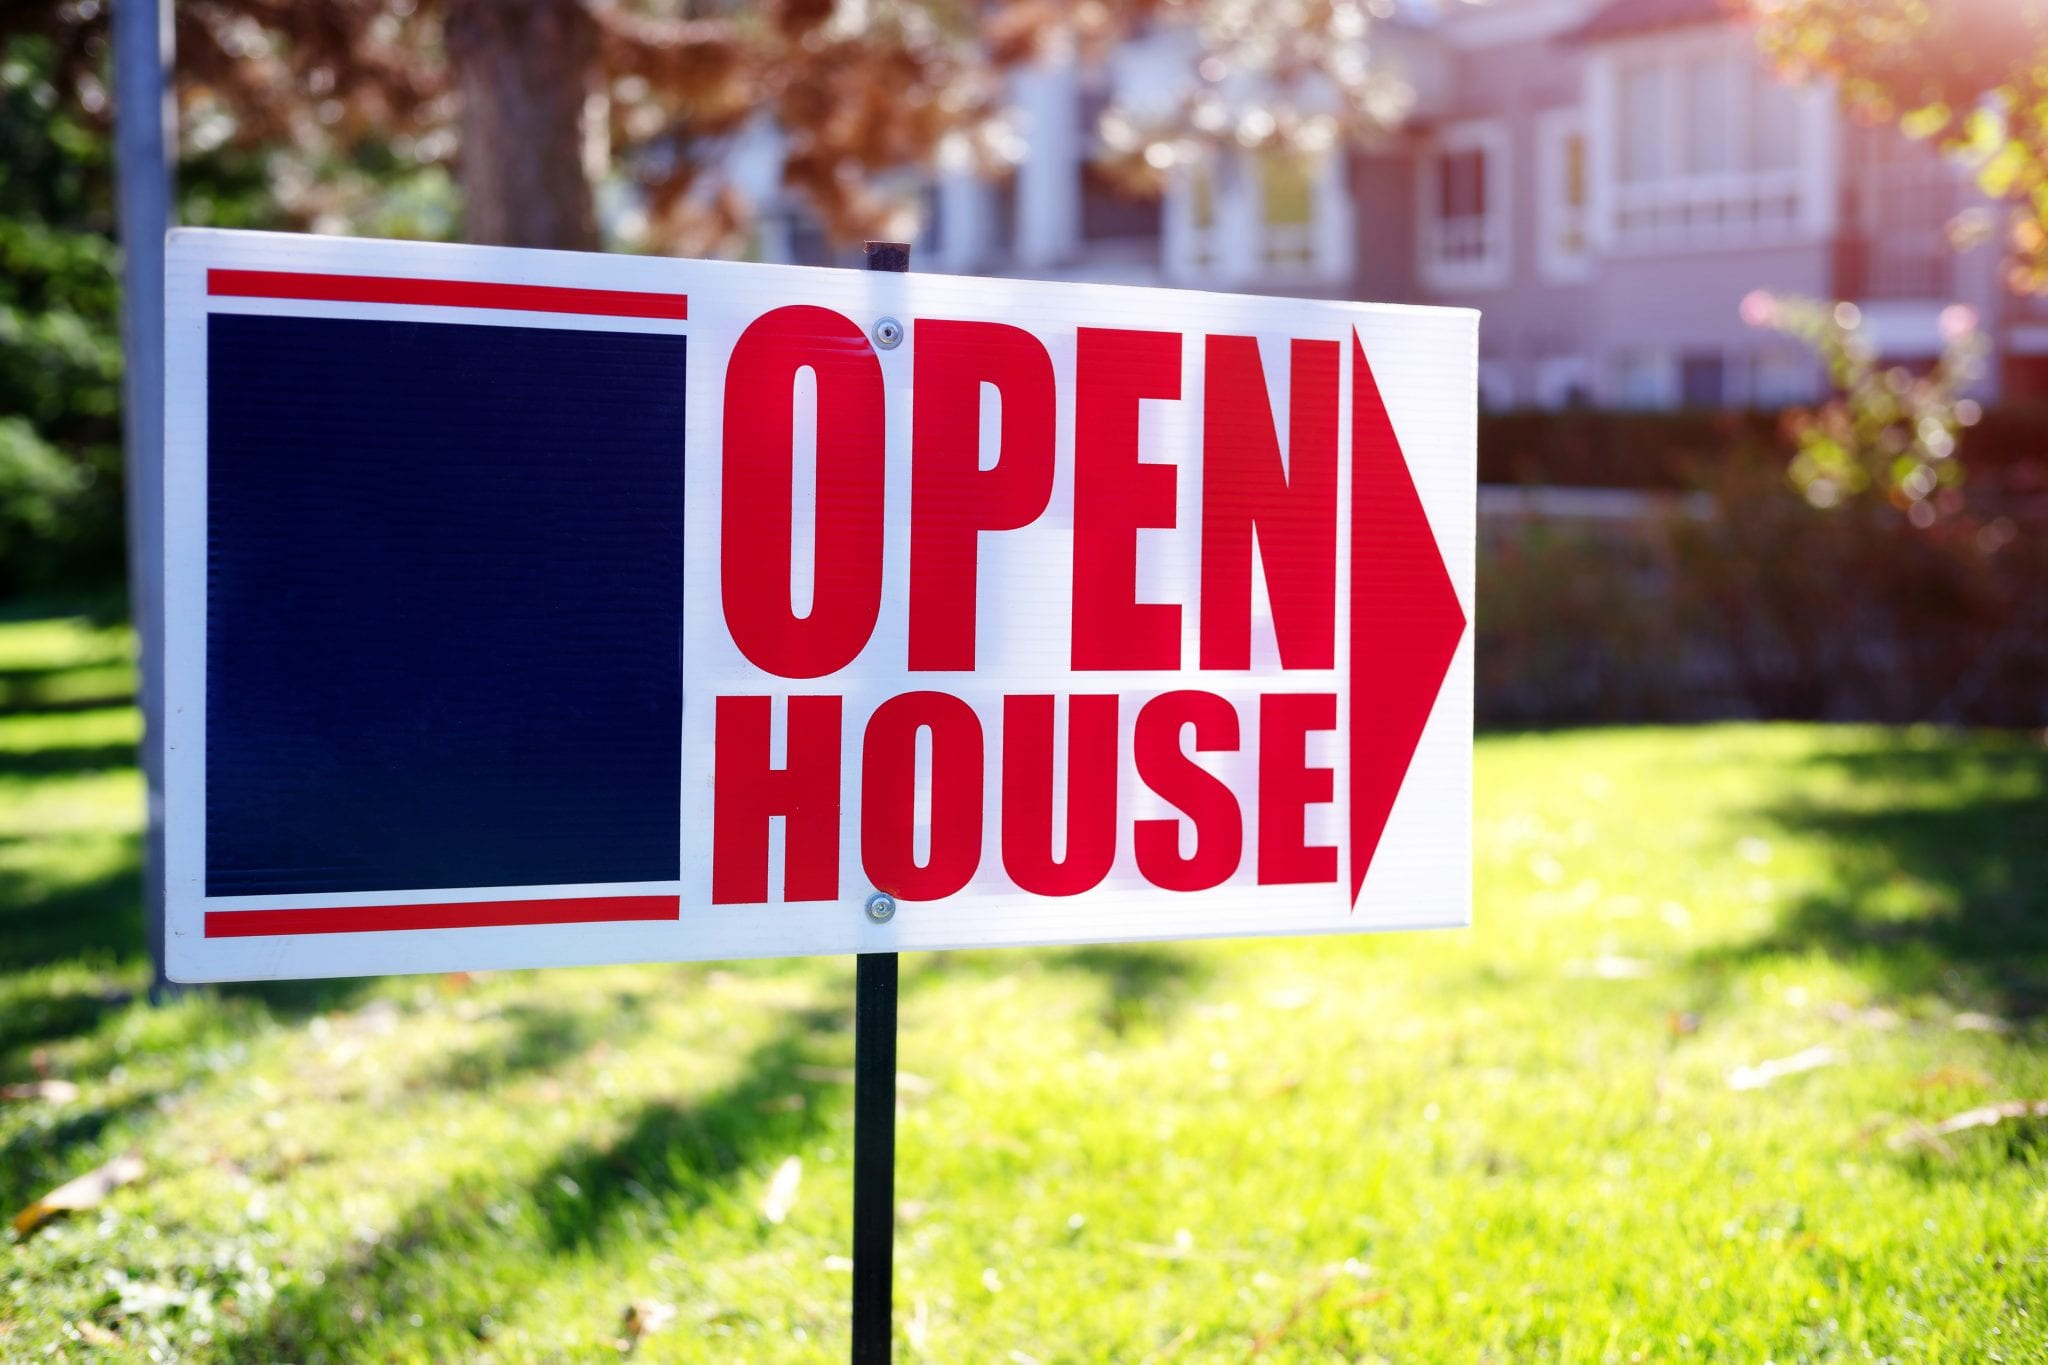 Open house near me sign